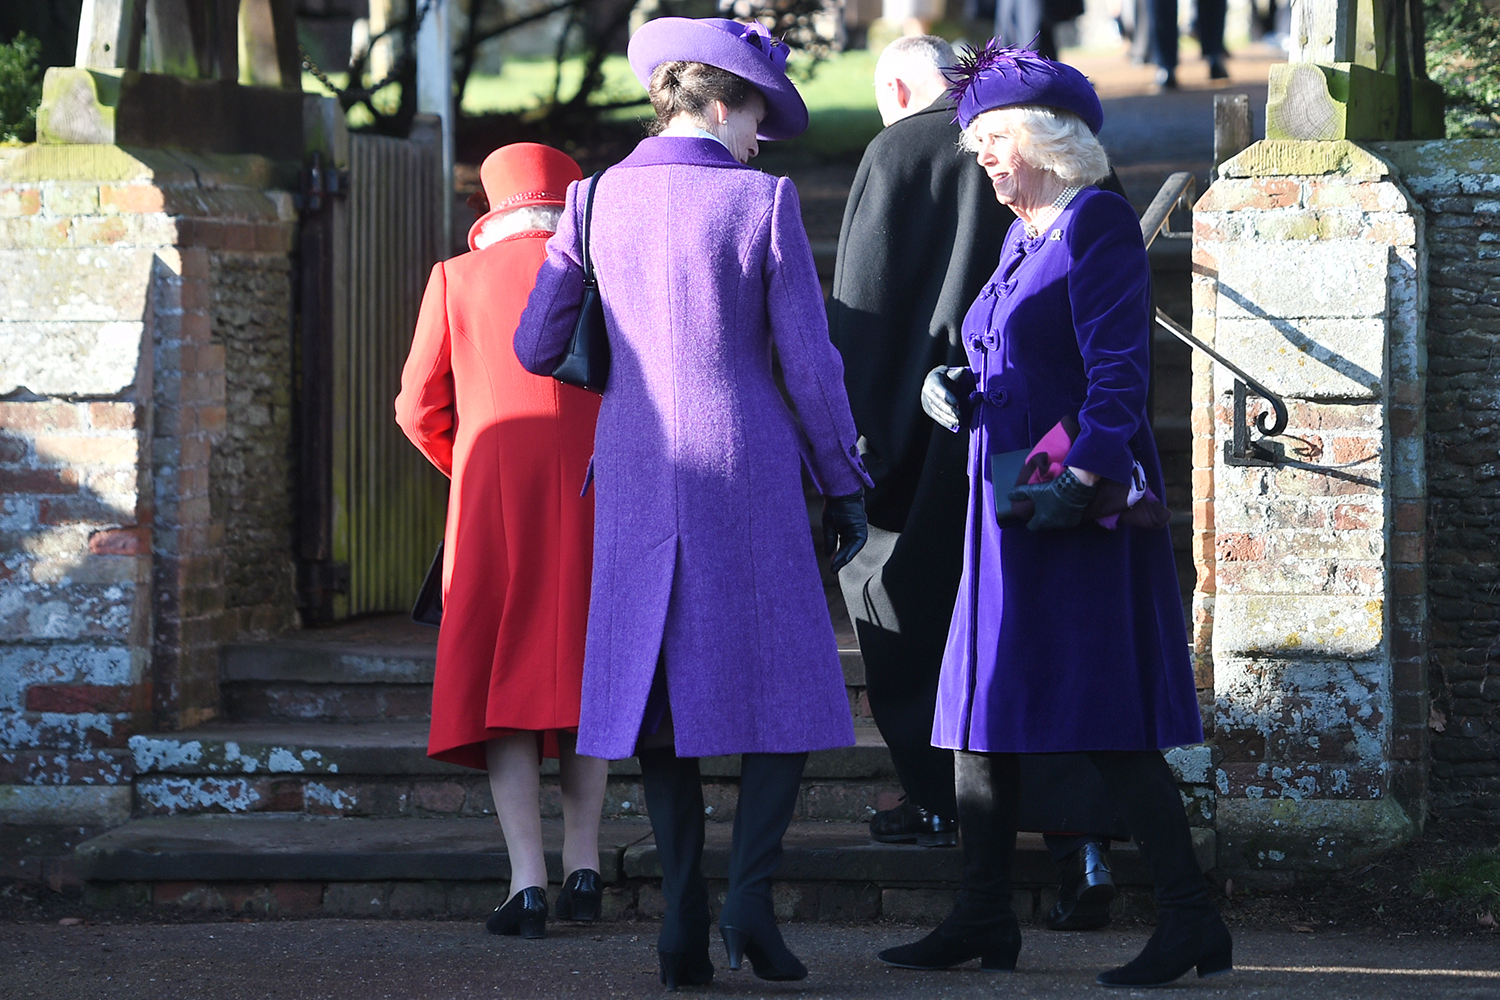 Queen Elizabeth II, the Princess Royal and the Duchess of Cornwall arriving to attend the Christmas Day morning church service at St Mary Magdalene Church in Sandringham, Norfolk. (Photo by Joe Giddens/PA Images via Getty Images)